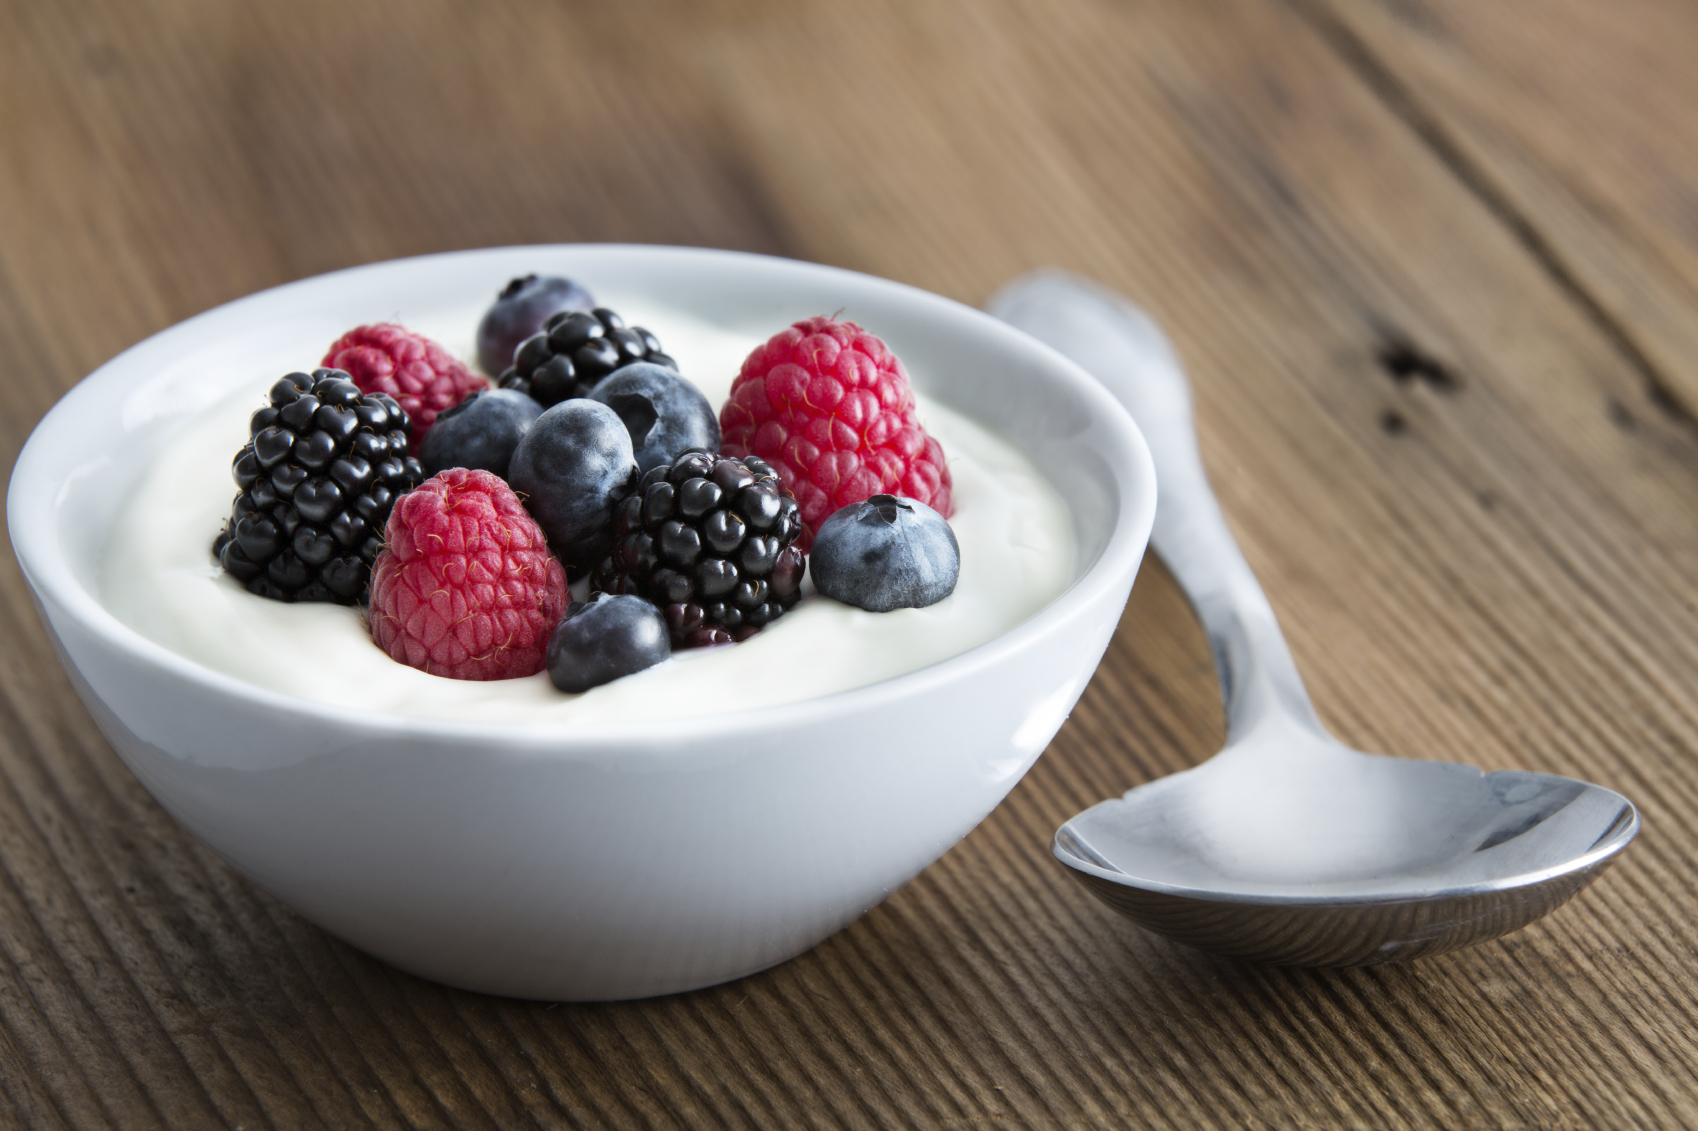 For a healthier yogurt, BYOB (bring your own berries) image: ozgur coskun